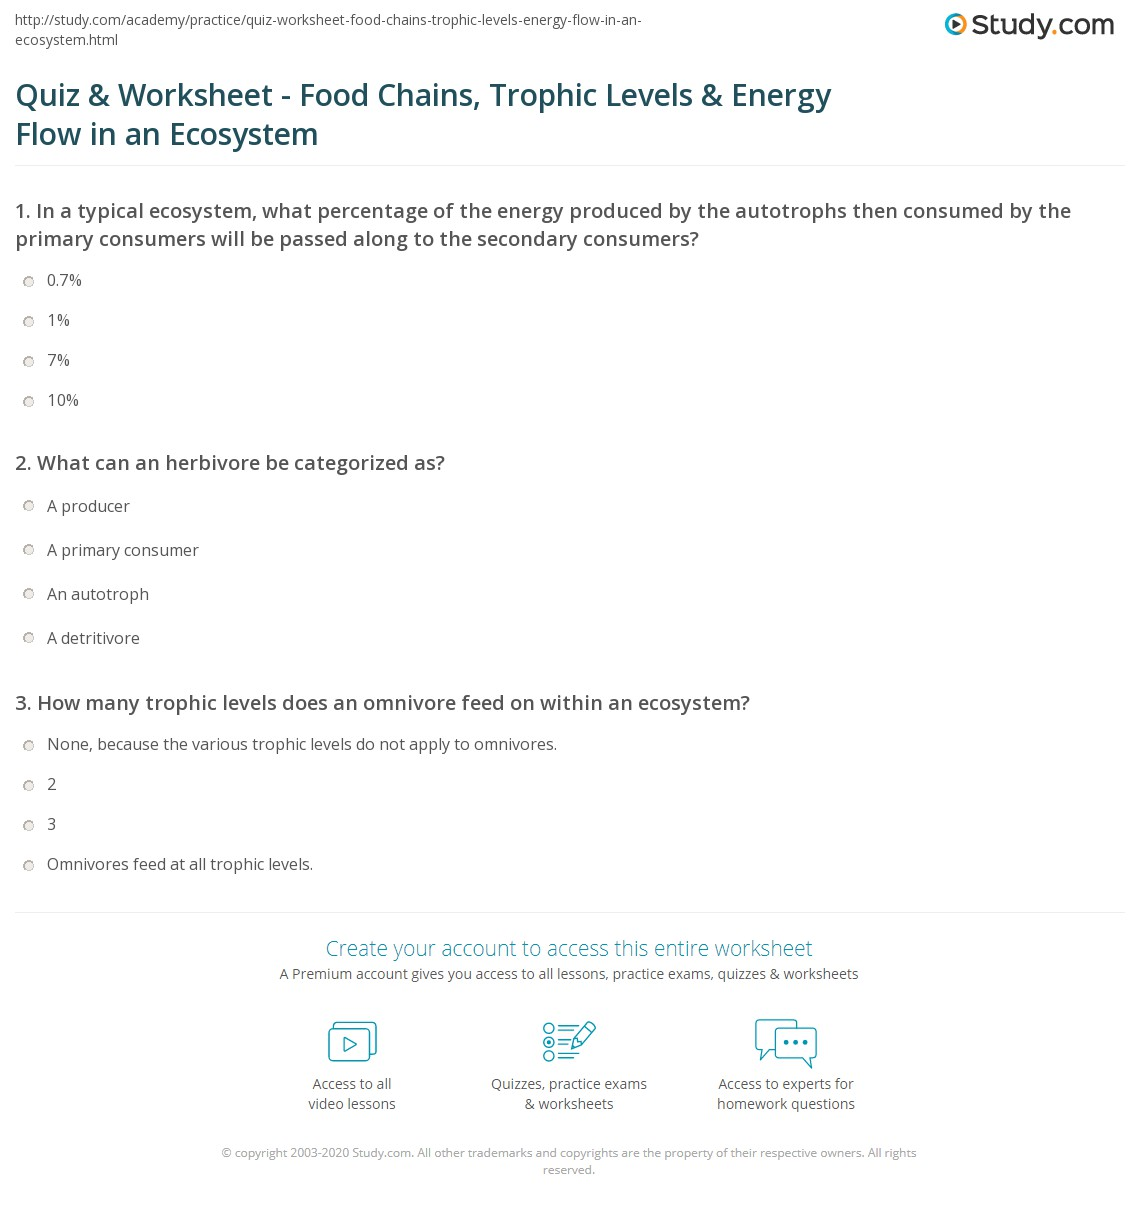 Printables Energy Flow In Ecosystems Worksheet quiz worksheet food chains trophic levels energy flow in an print and ecosystem worksheet